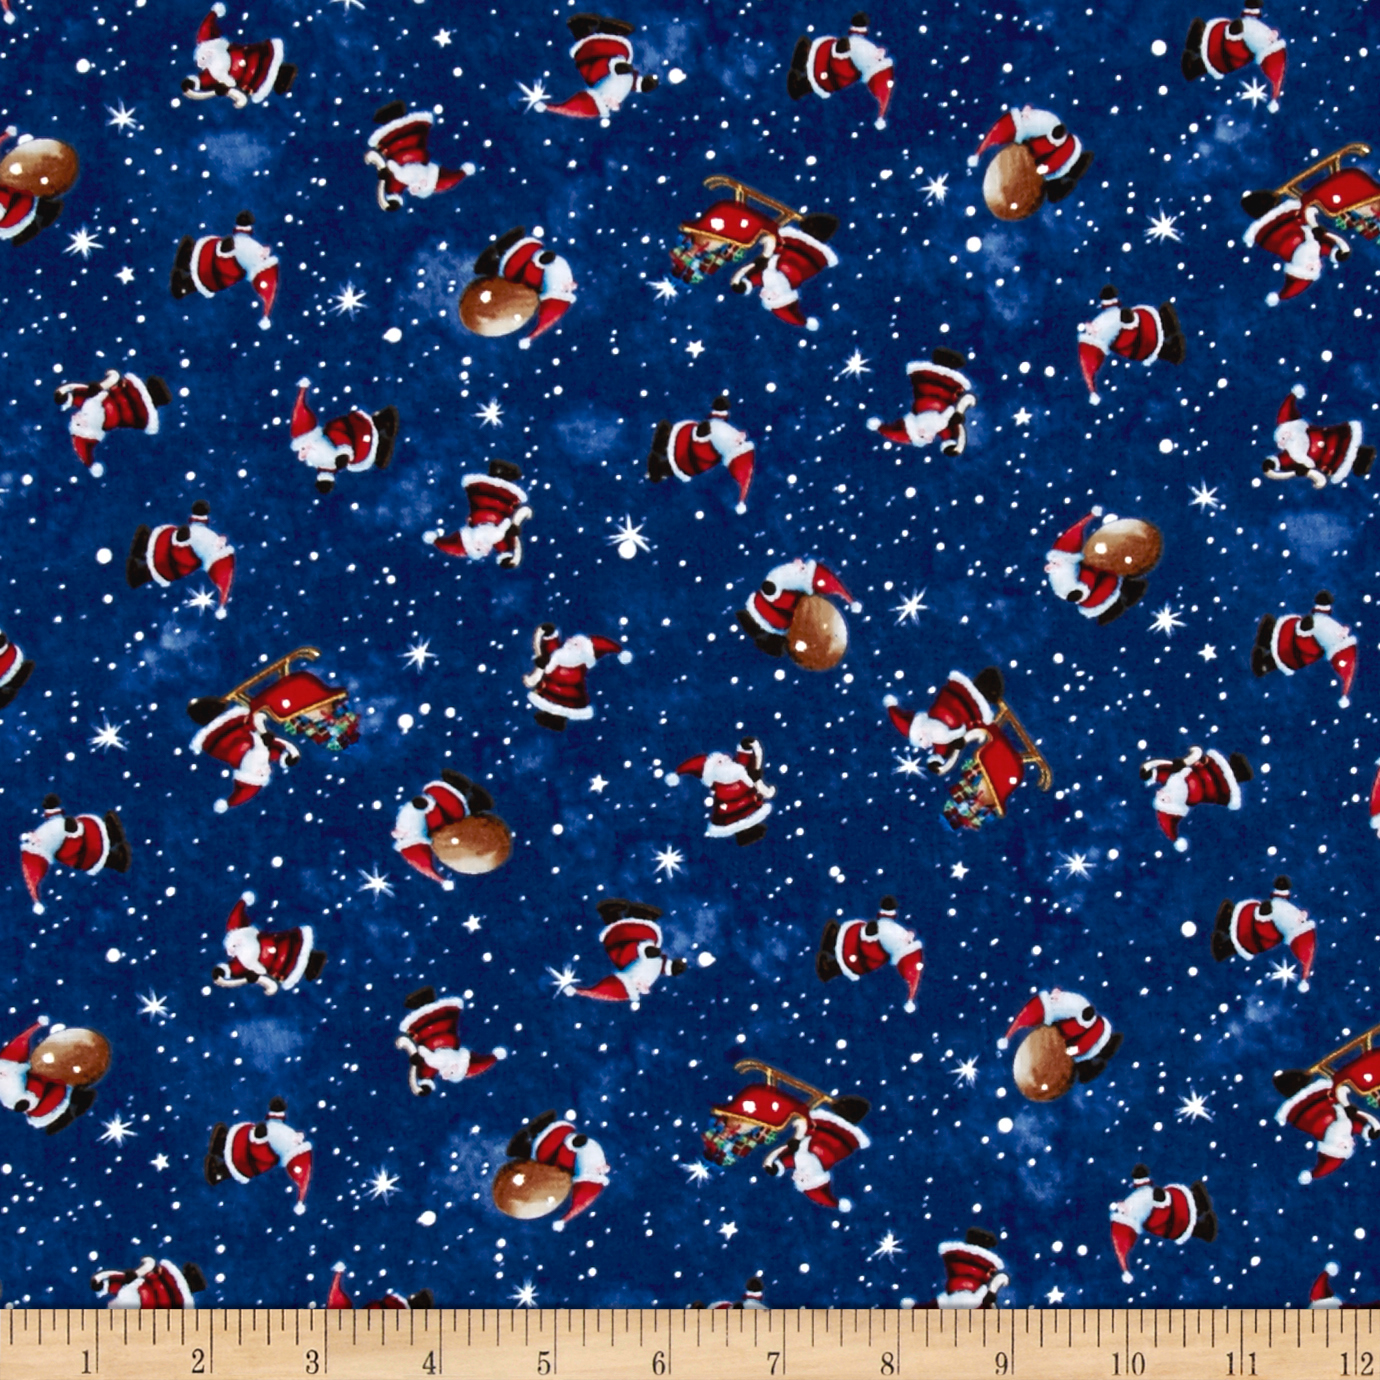 Christmas Village Tossed Santa Blue Fabric by P & B in USA